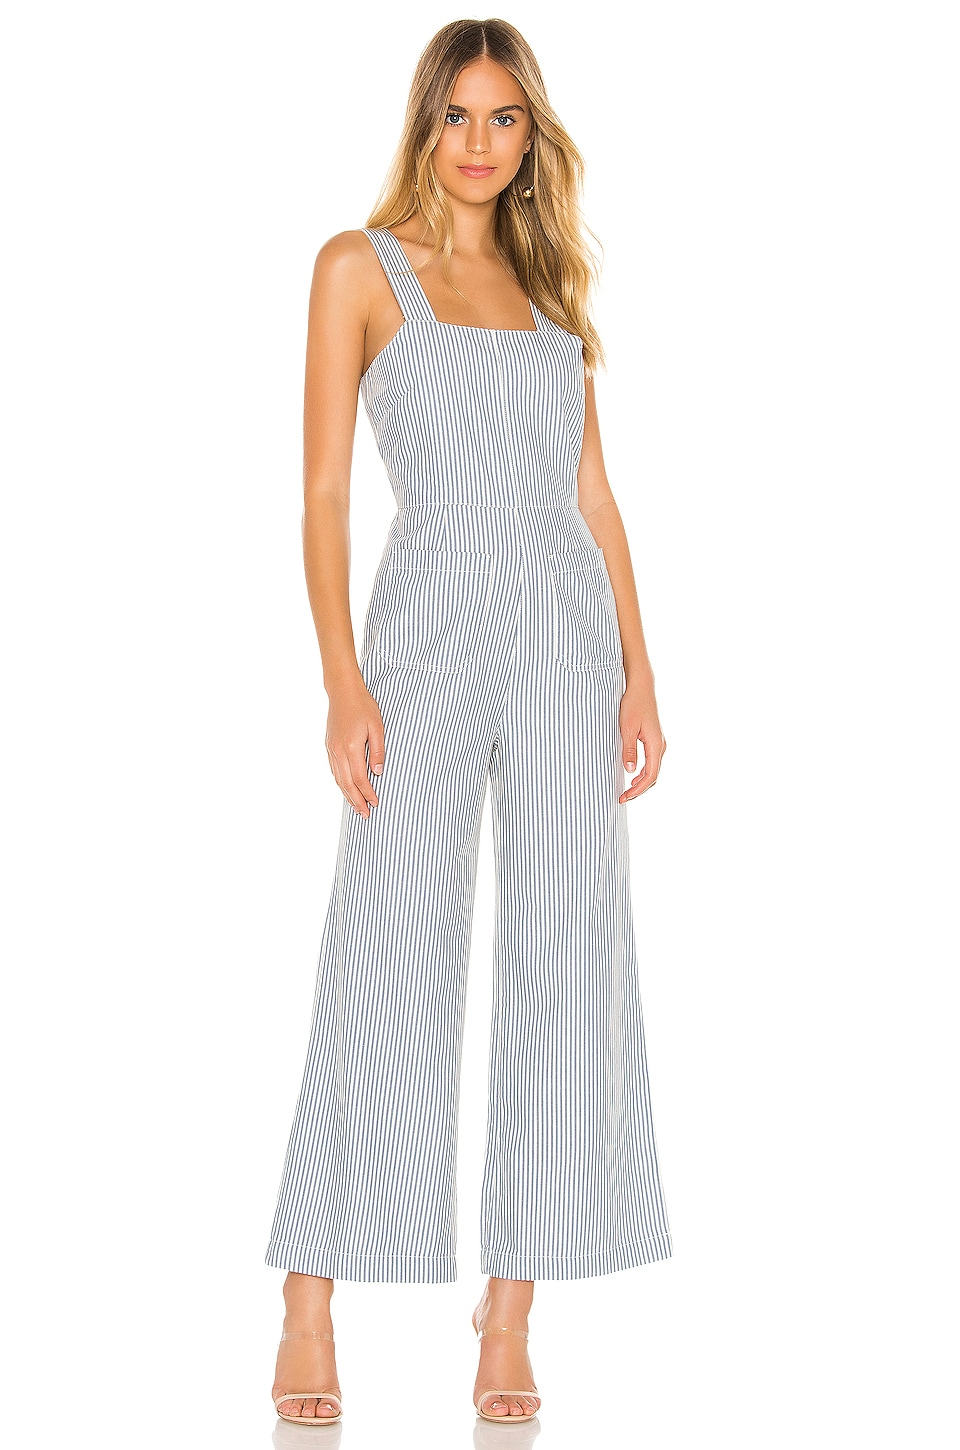 ROLLA'S Sailor Stripe Jumpsuit in Blue & White